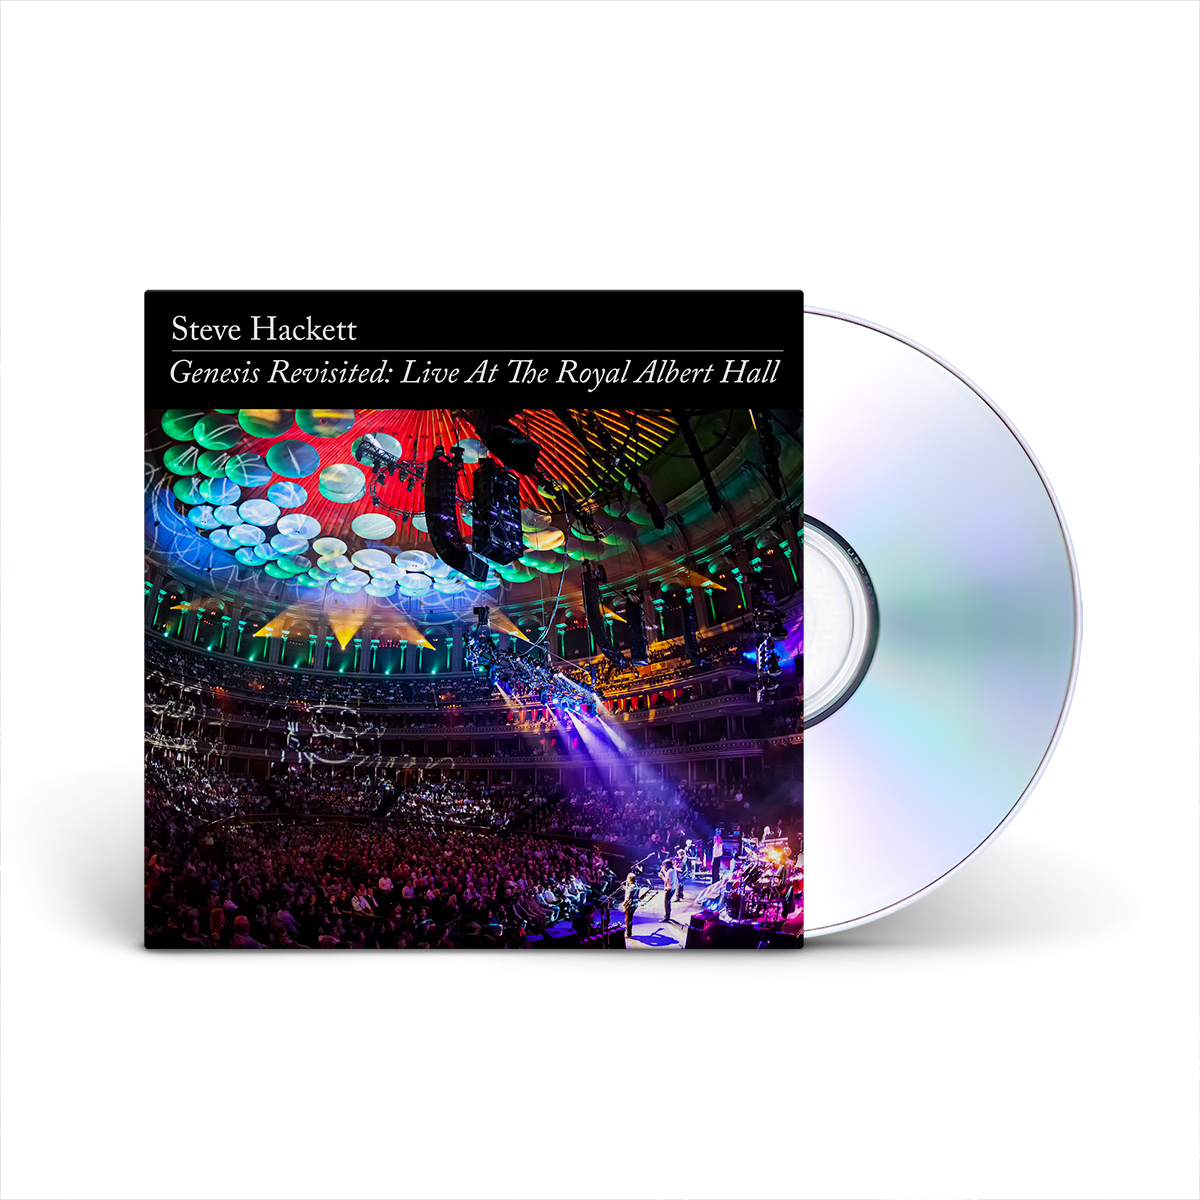 Steve Hackett - Genesis Revisited: Live at the Royal Albert Hall DVD